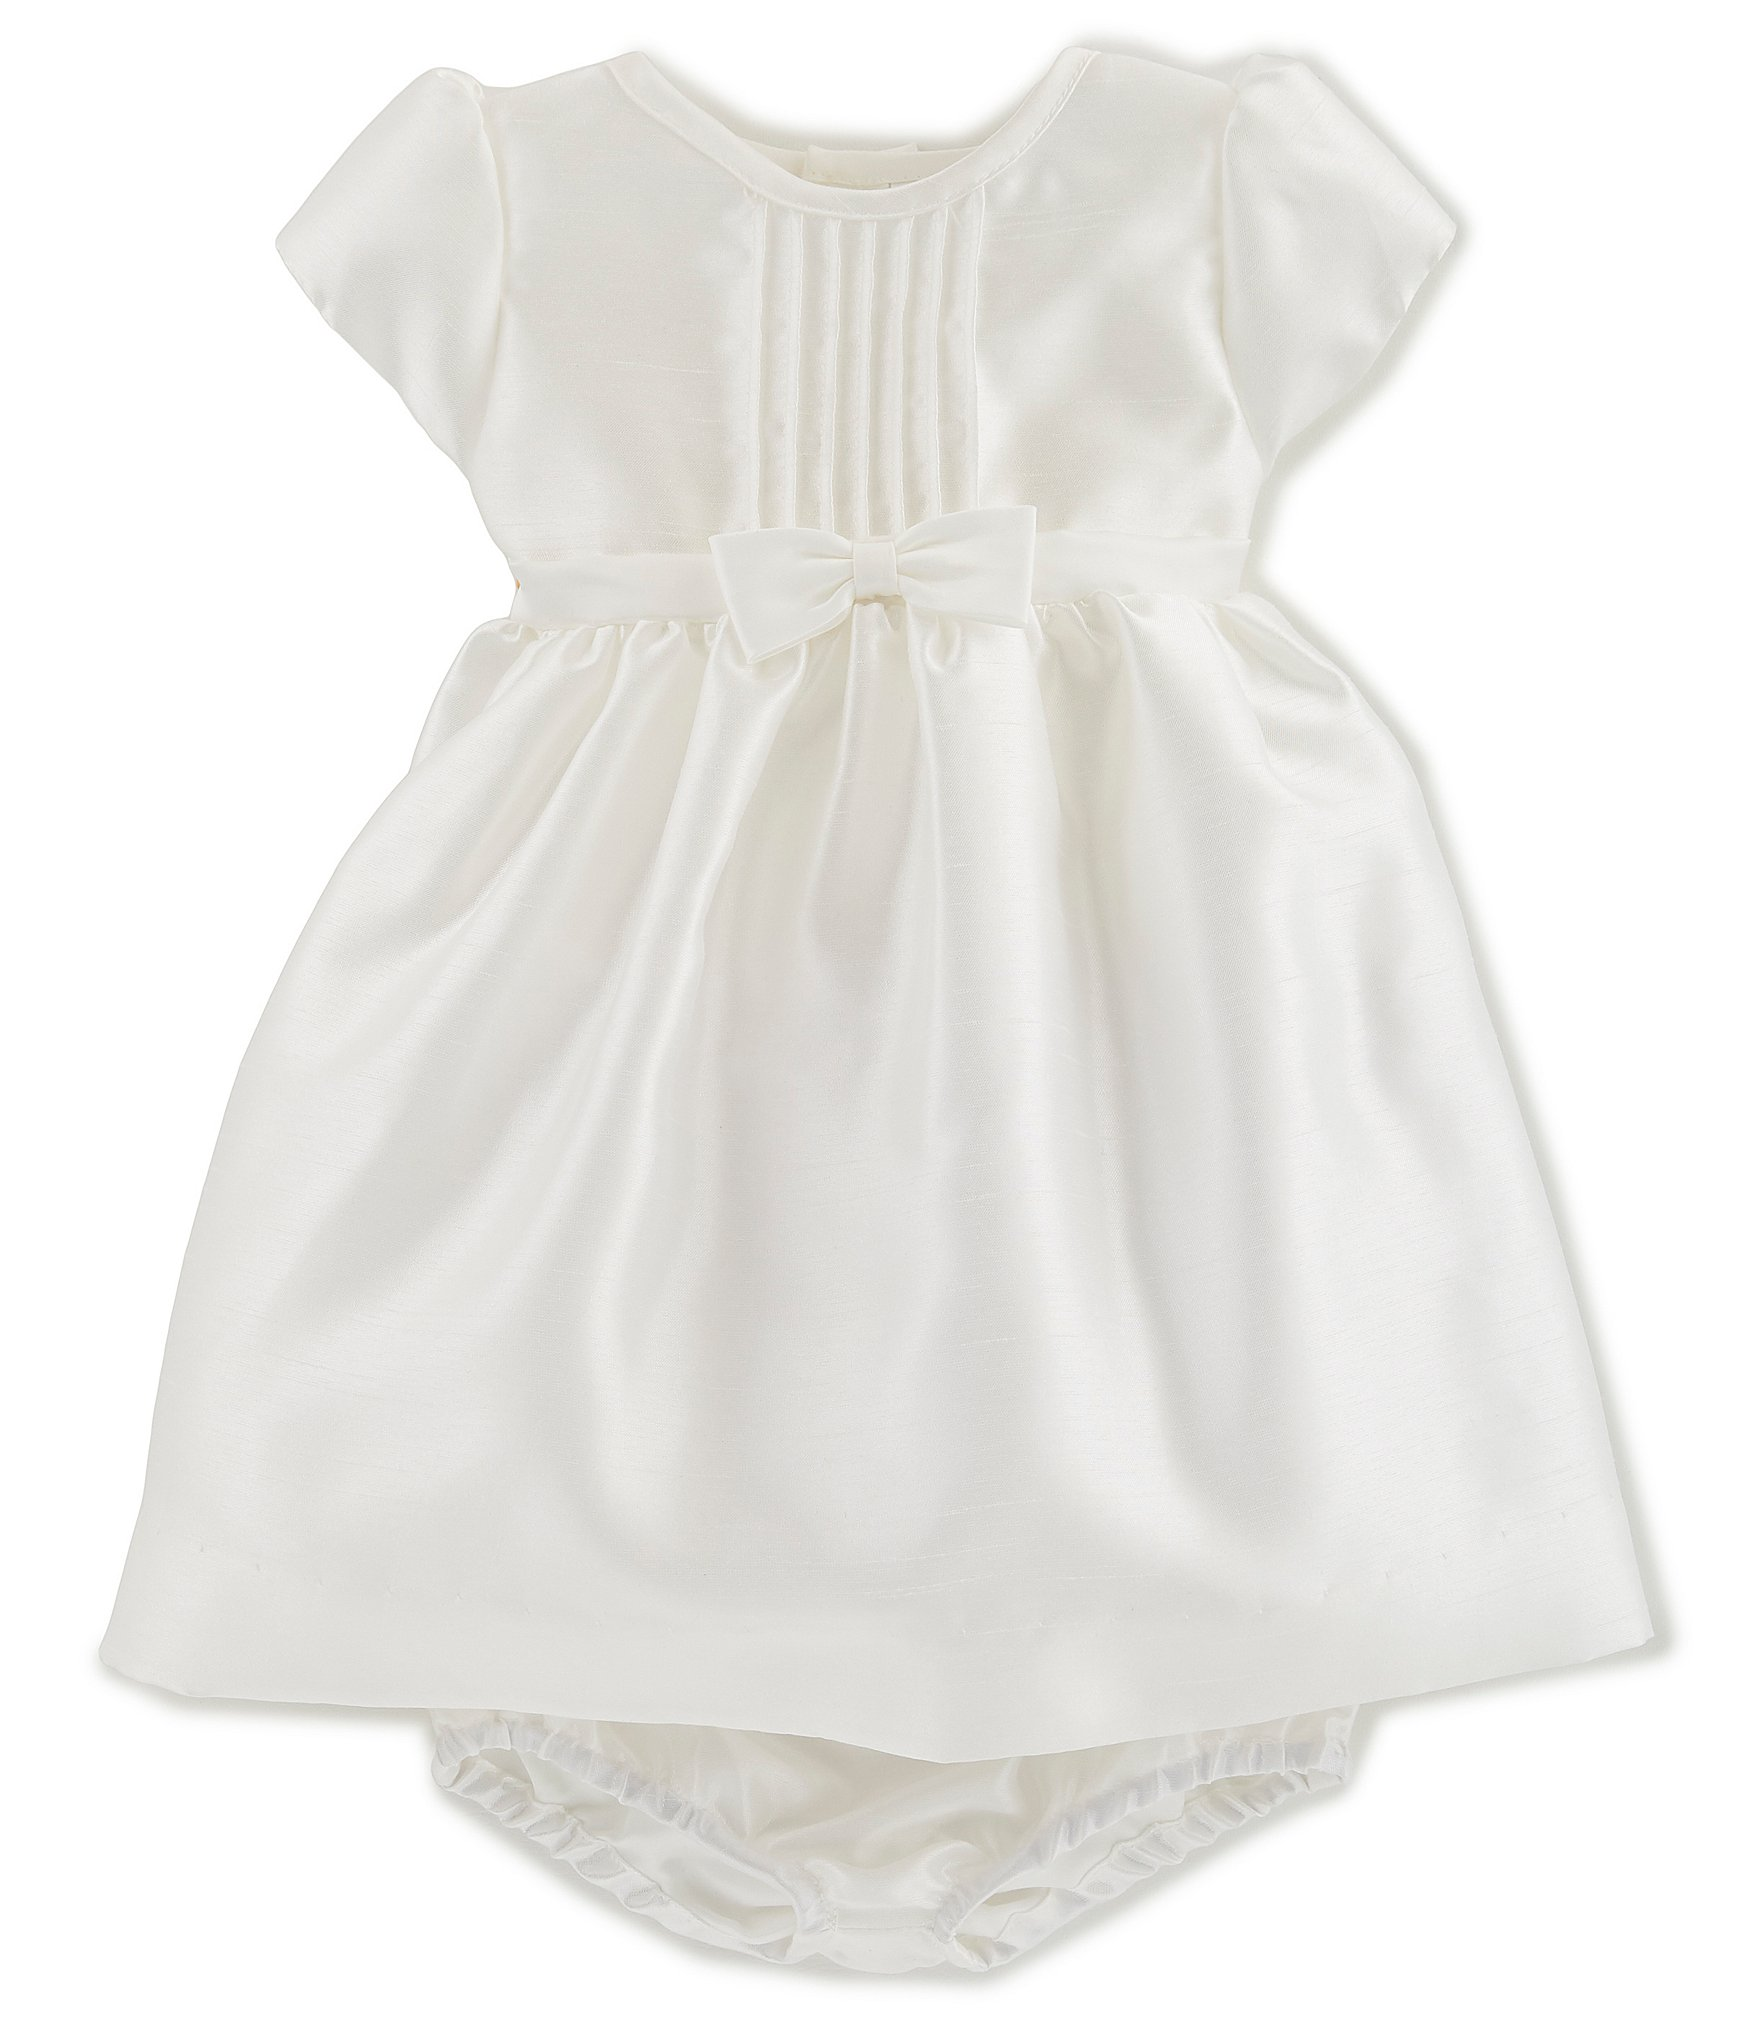 42c8fb03d 2 Piece Baby Girl Dresses